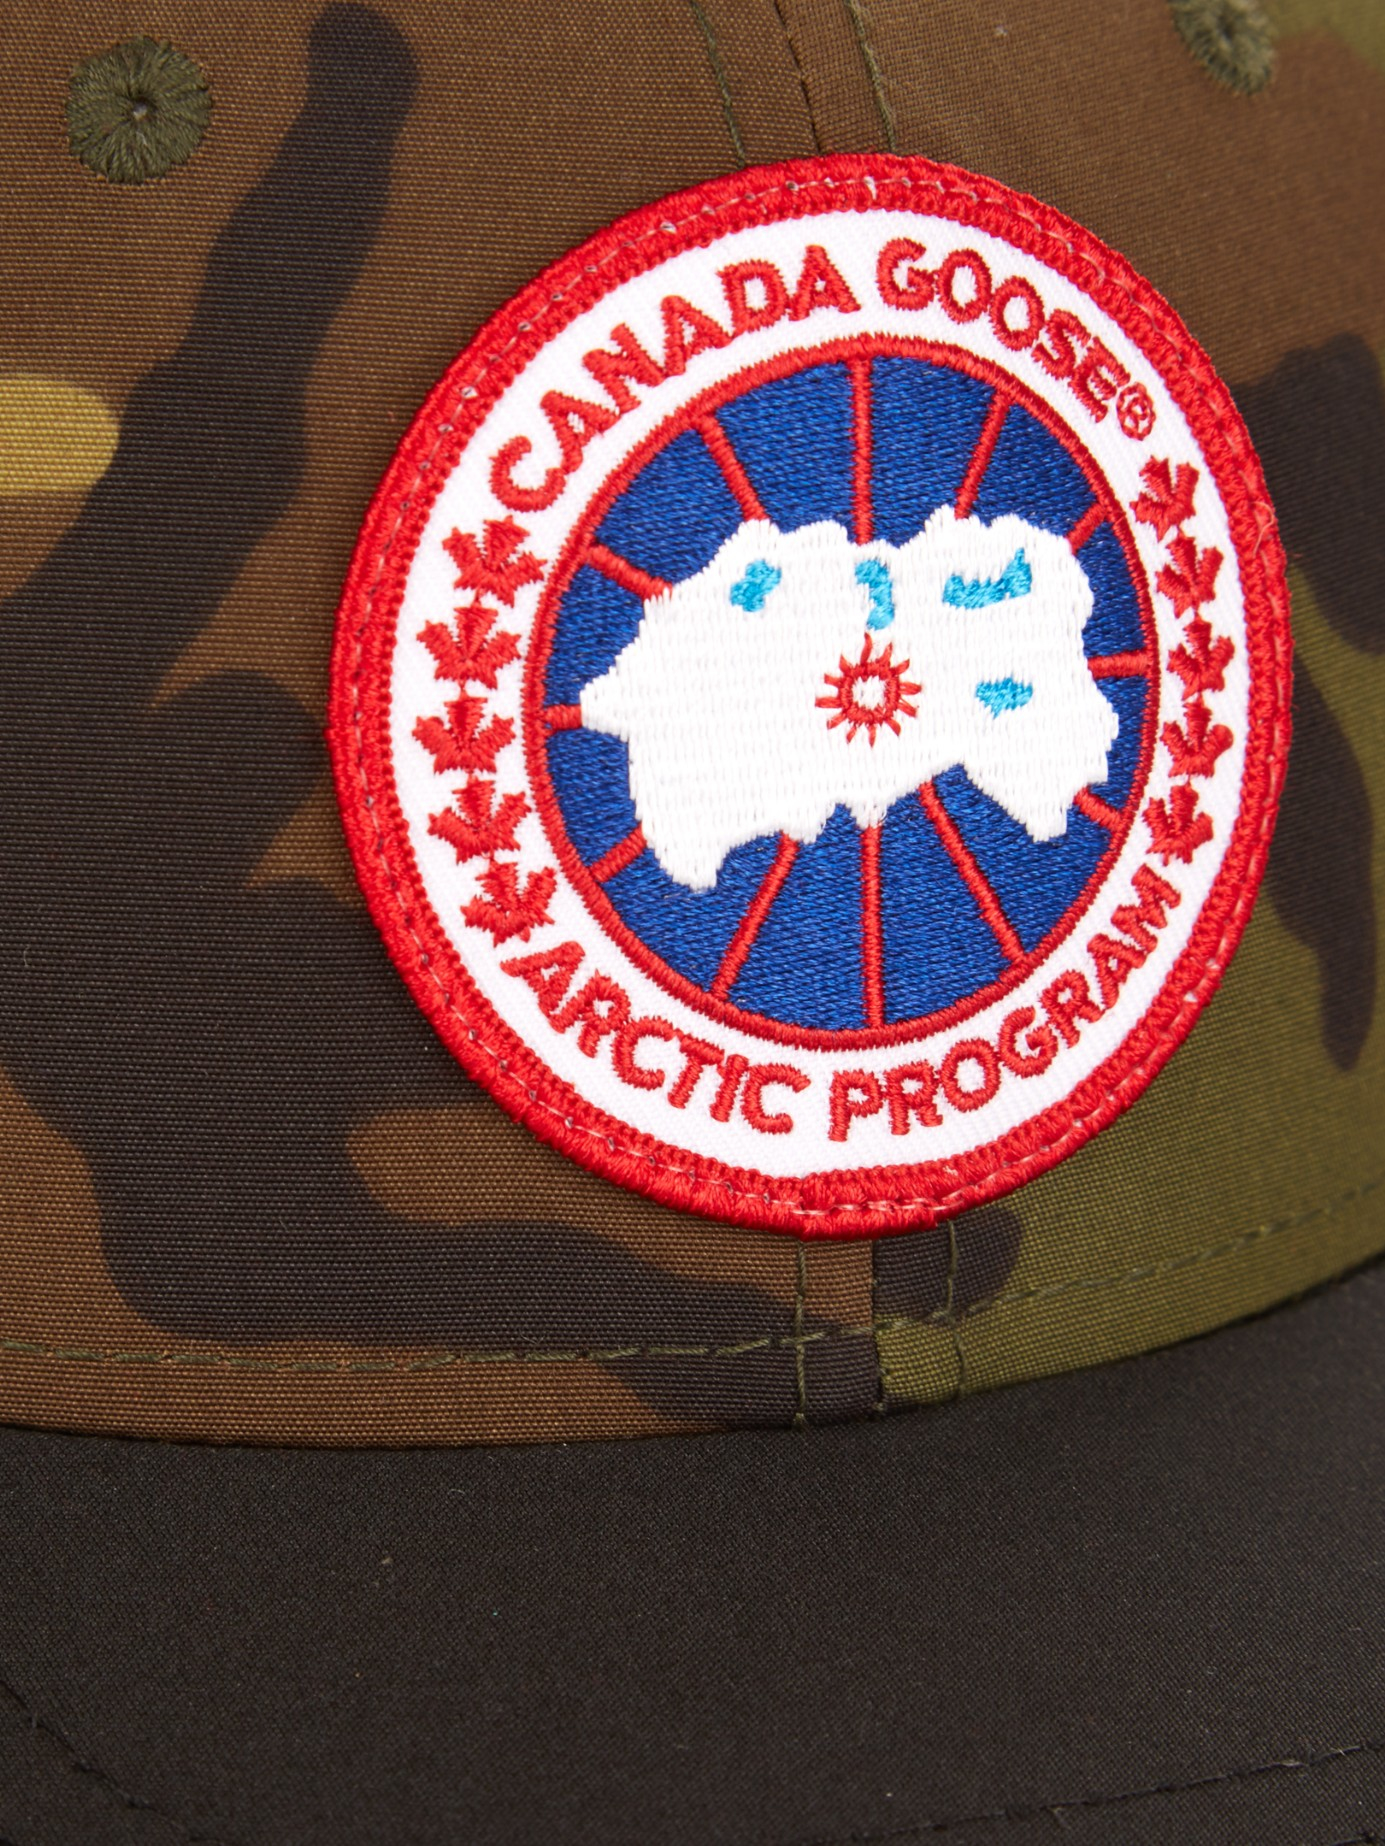 Lyst canada goose logo embroidered camouflage print cap